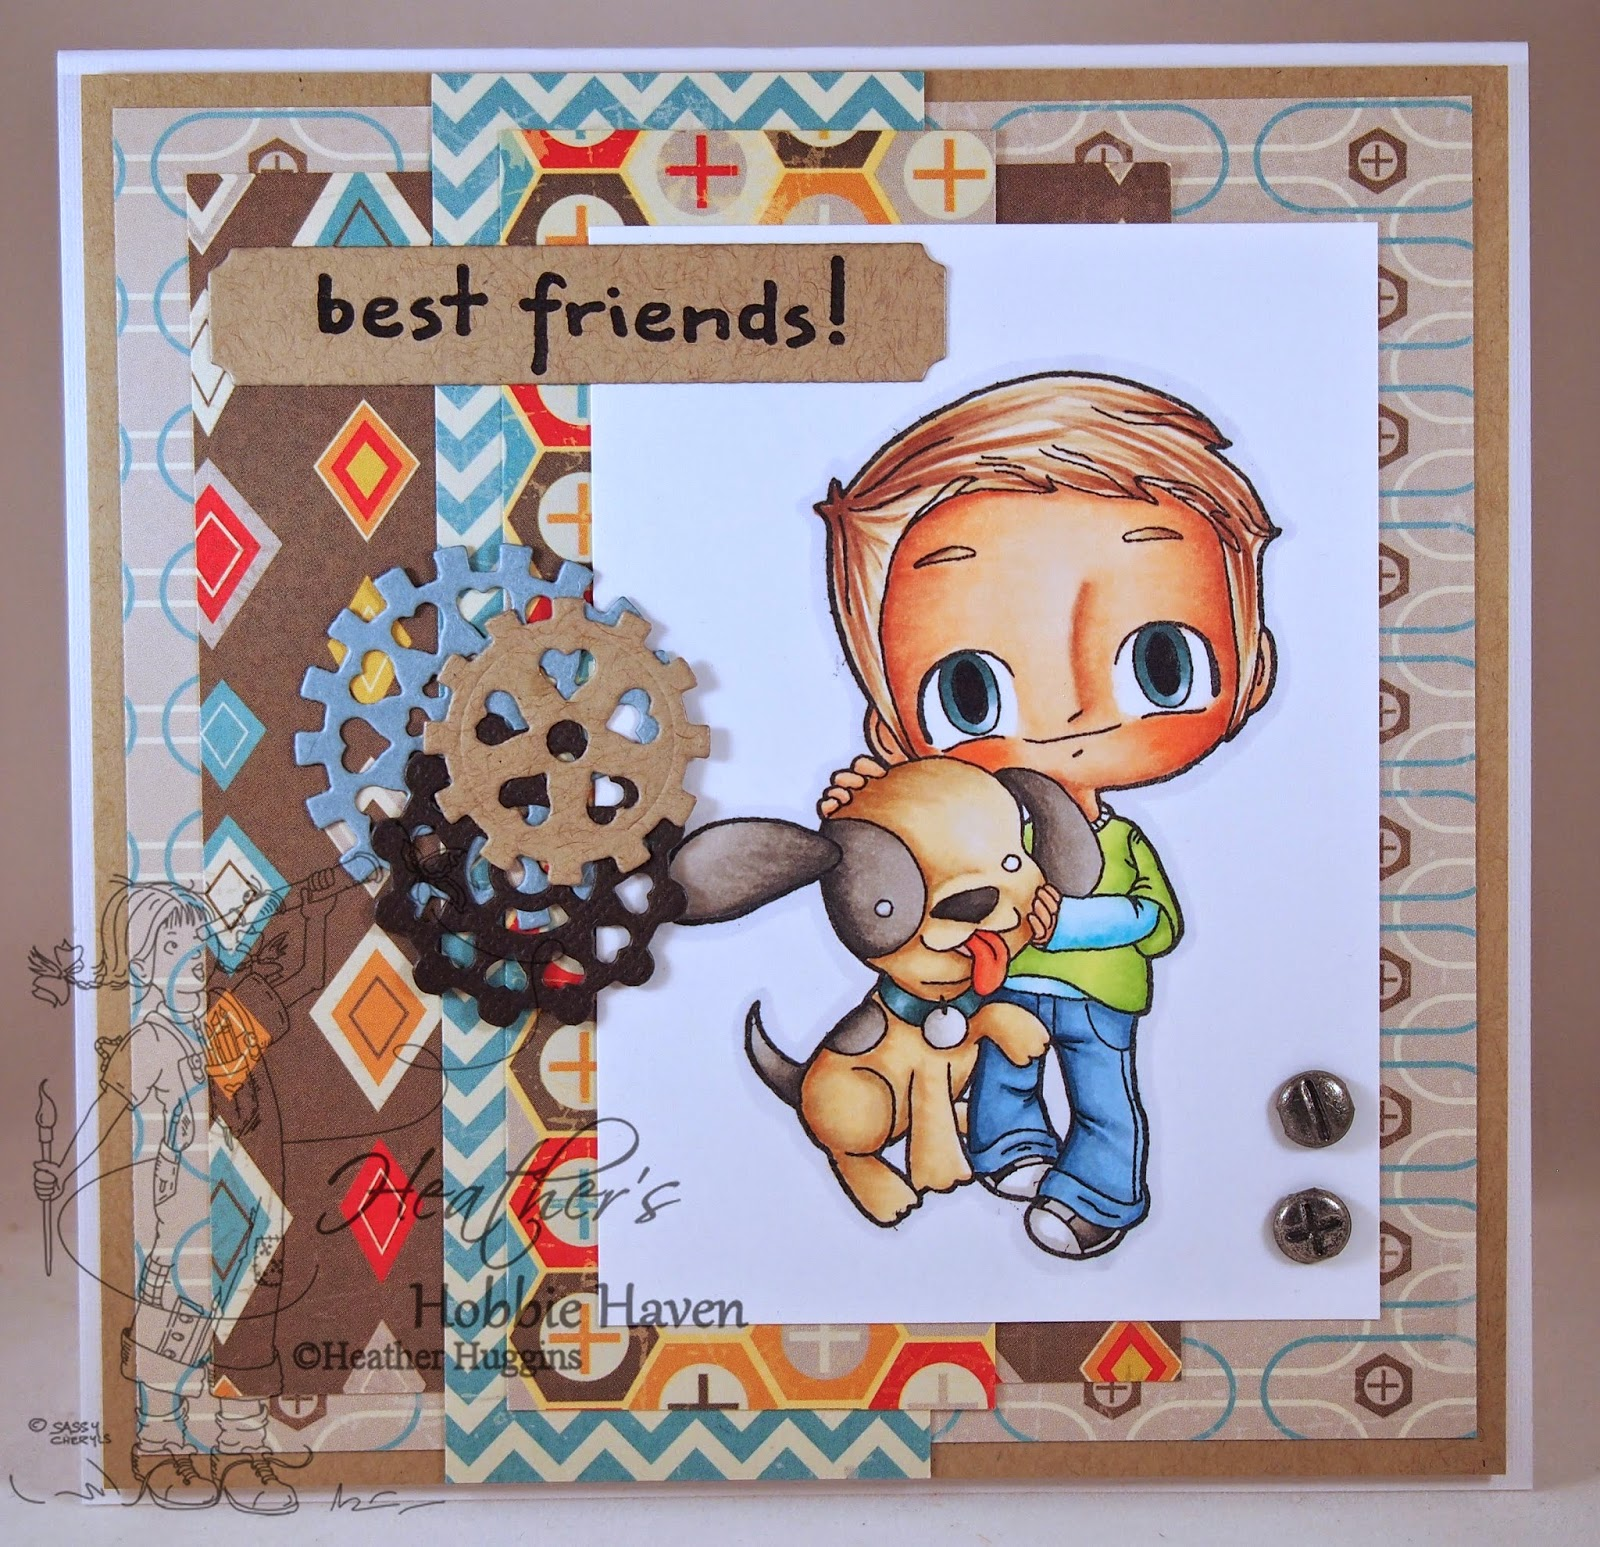 Heather's Hobbie Haven - Tobie with His Puppy Card Kit